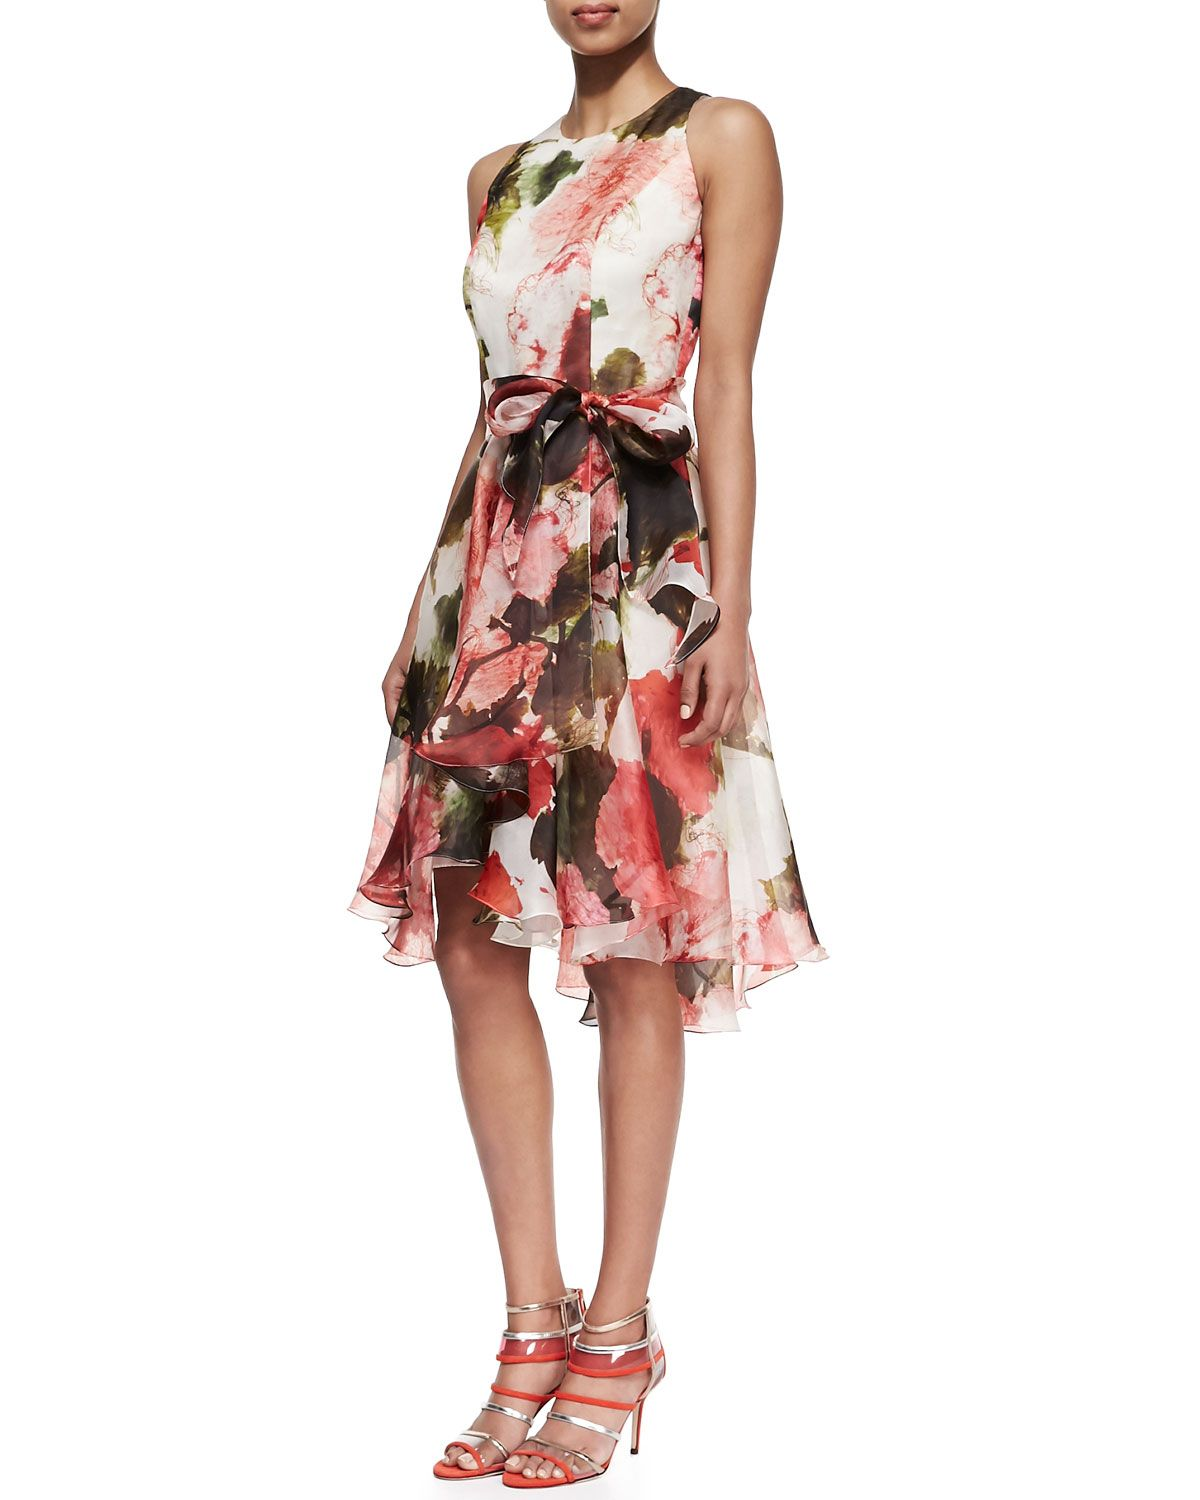 CARMEN MARC VALVO Floral Silk Sleeveless Cocktail Dress Coral Floral $595 & FREE WORLD SHIPPING..PICK UP YOUR ORDER FROM US AND RECEIVE 10% OFF